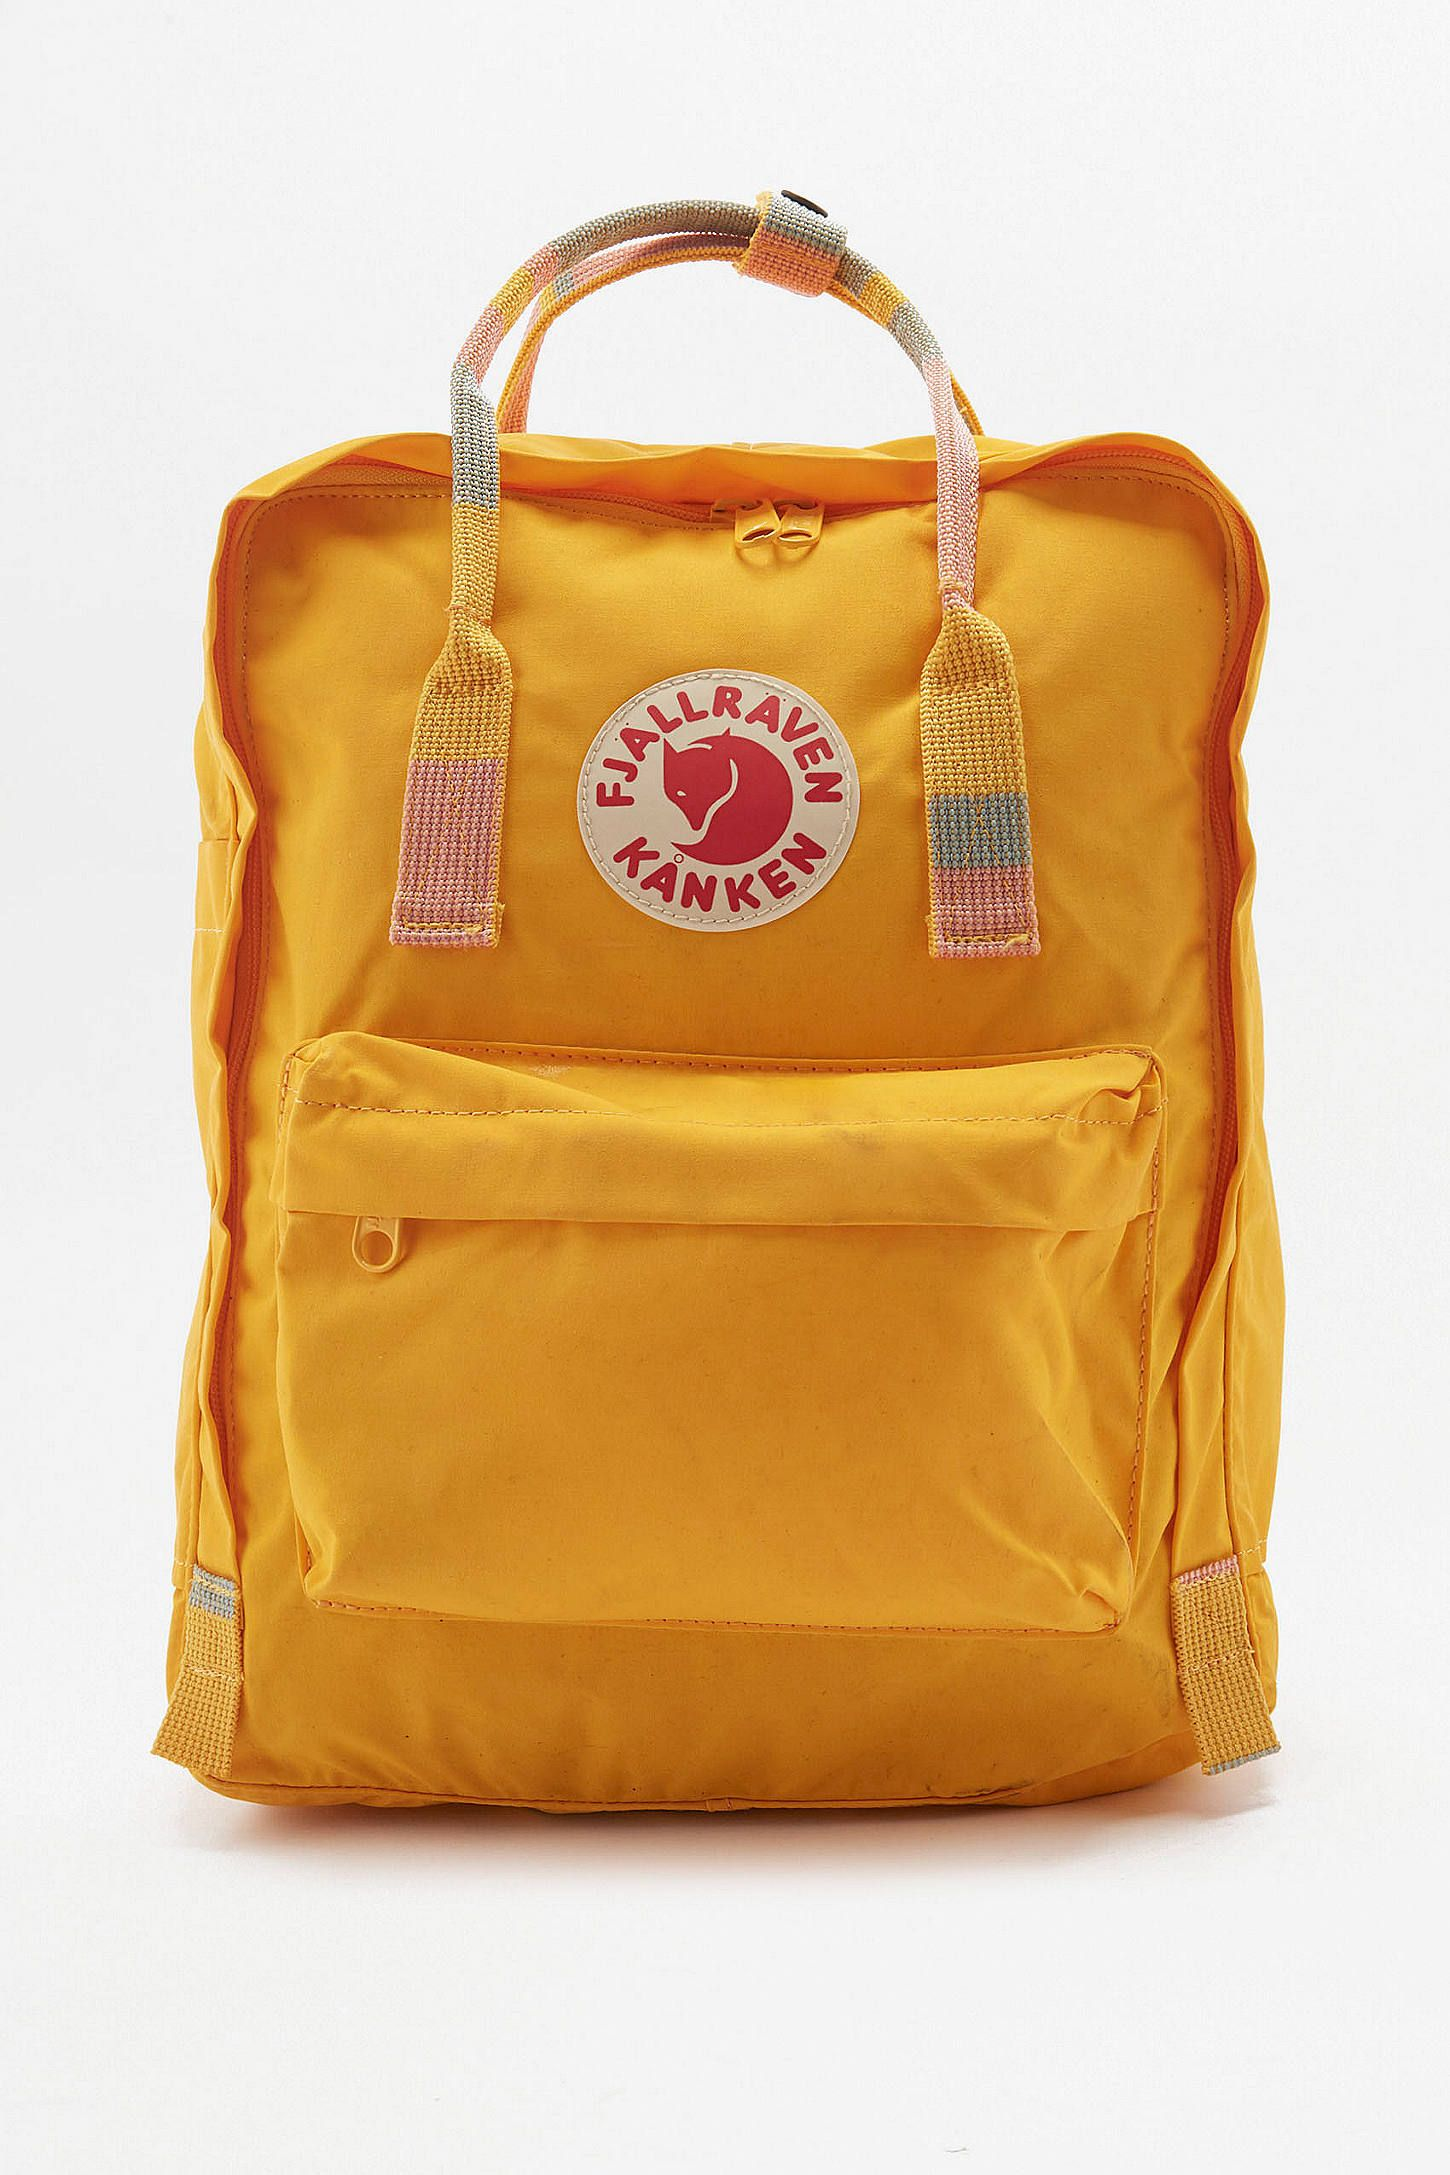 bde731b8a84d Shop Fjallraven Kanken Warm Yellow Striped Handle Backpack at Urban  Outfitters today. We carry all the latest styles